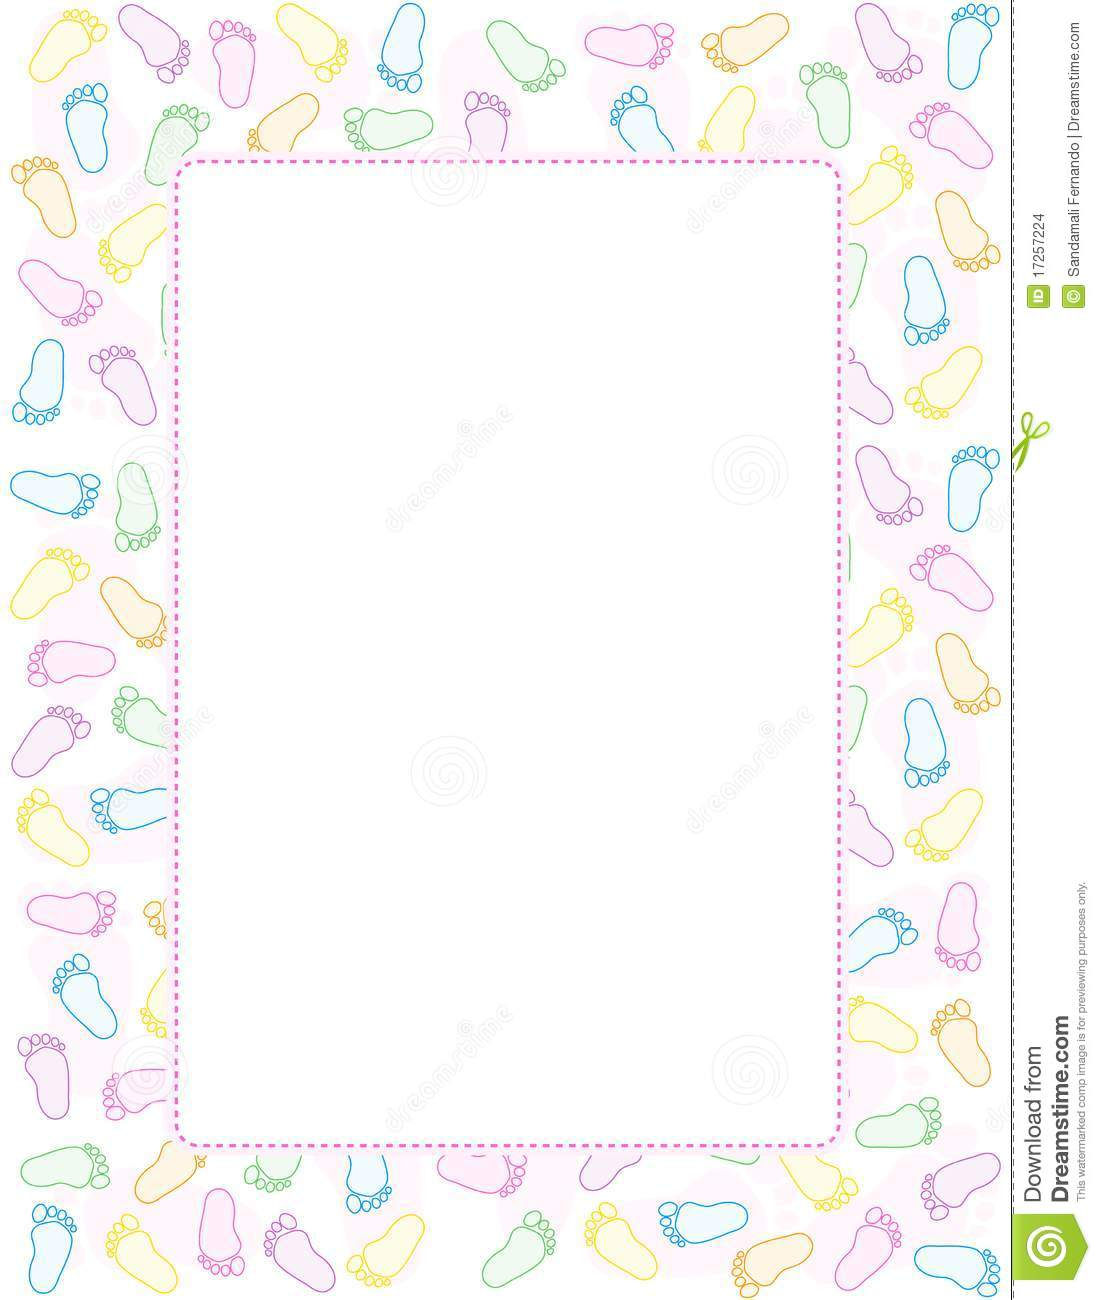 baby shower border clip art images pictures becuo